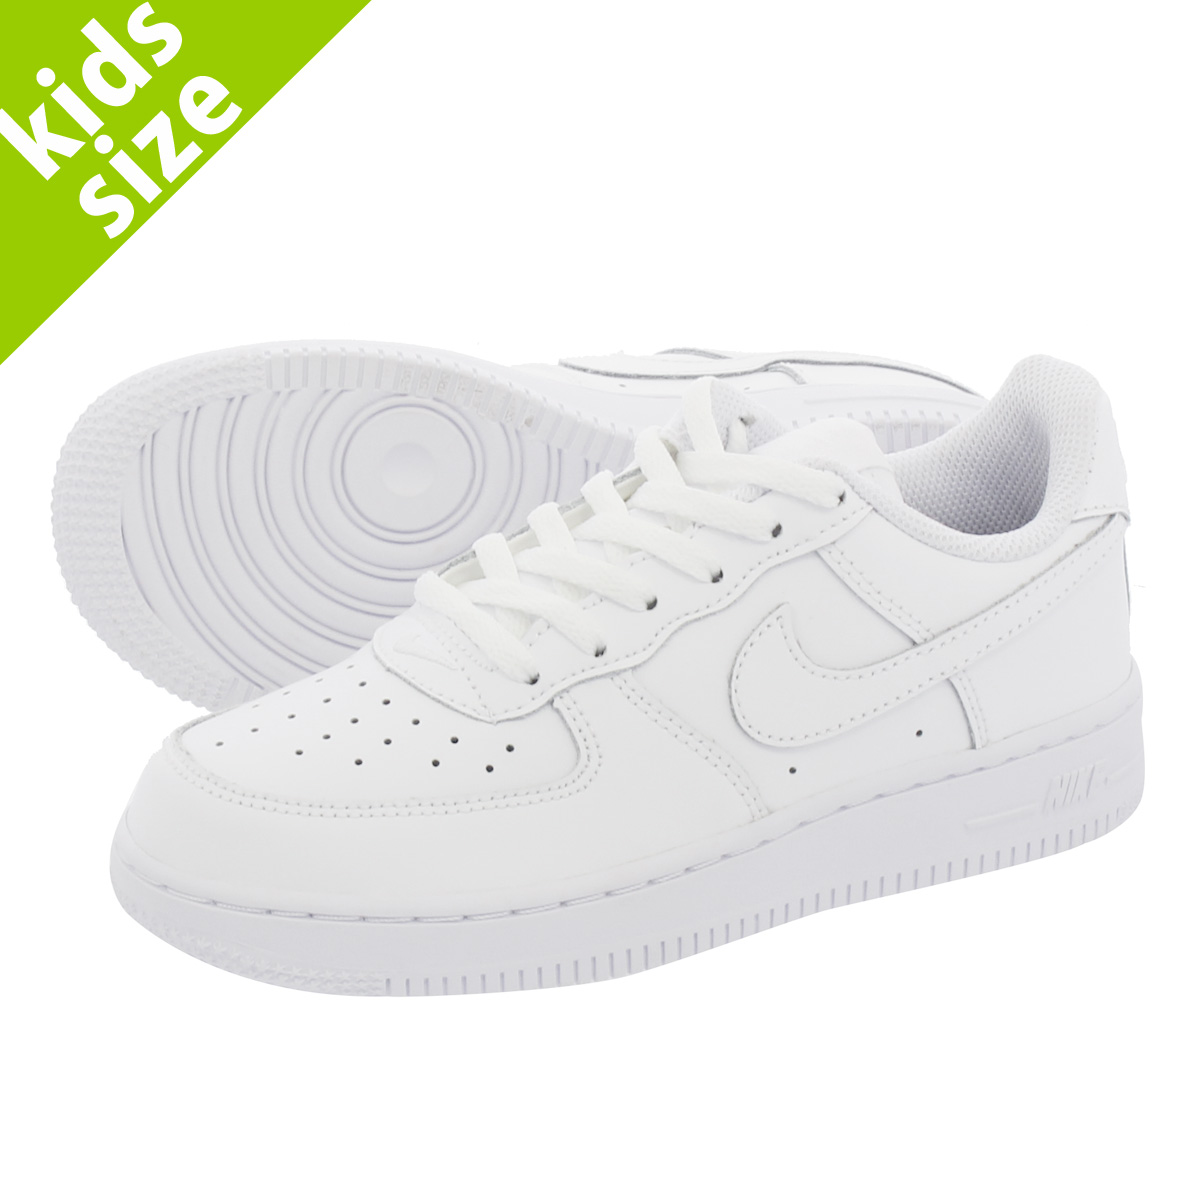 official photos a3928 149ed NIKE AIR FORCE 1 PS Nike air force 1 mid PS WHITE WHITE WHITE 314,193-117